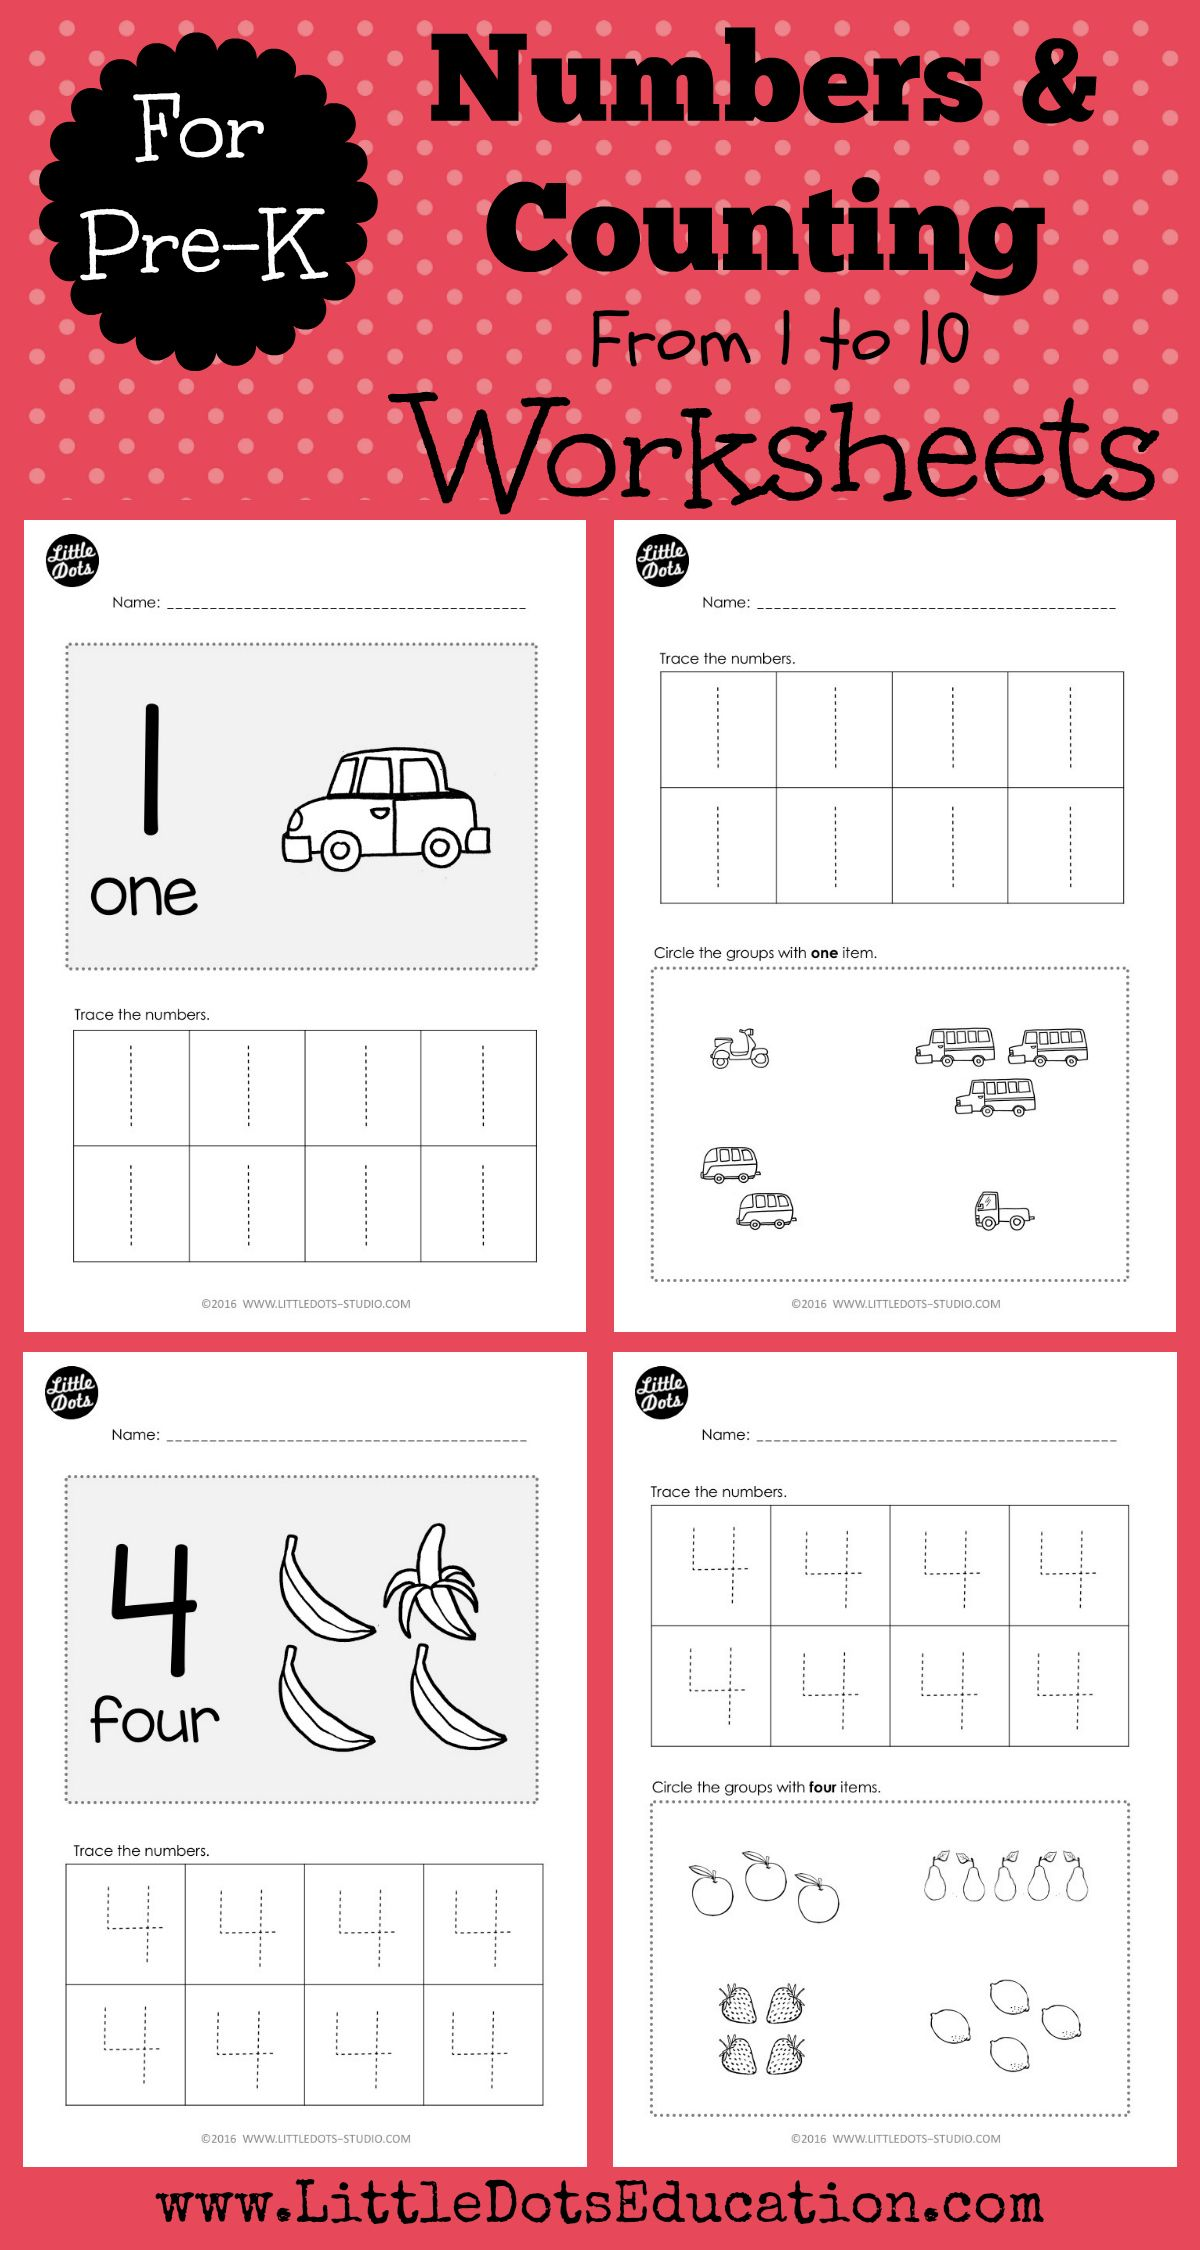 hight resolution of Pre-K Numbers 1 to 10 Worksheets and Activities   Counting activities  preschool